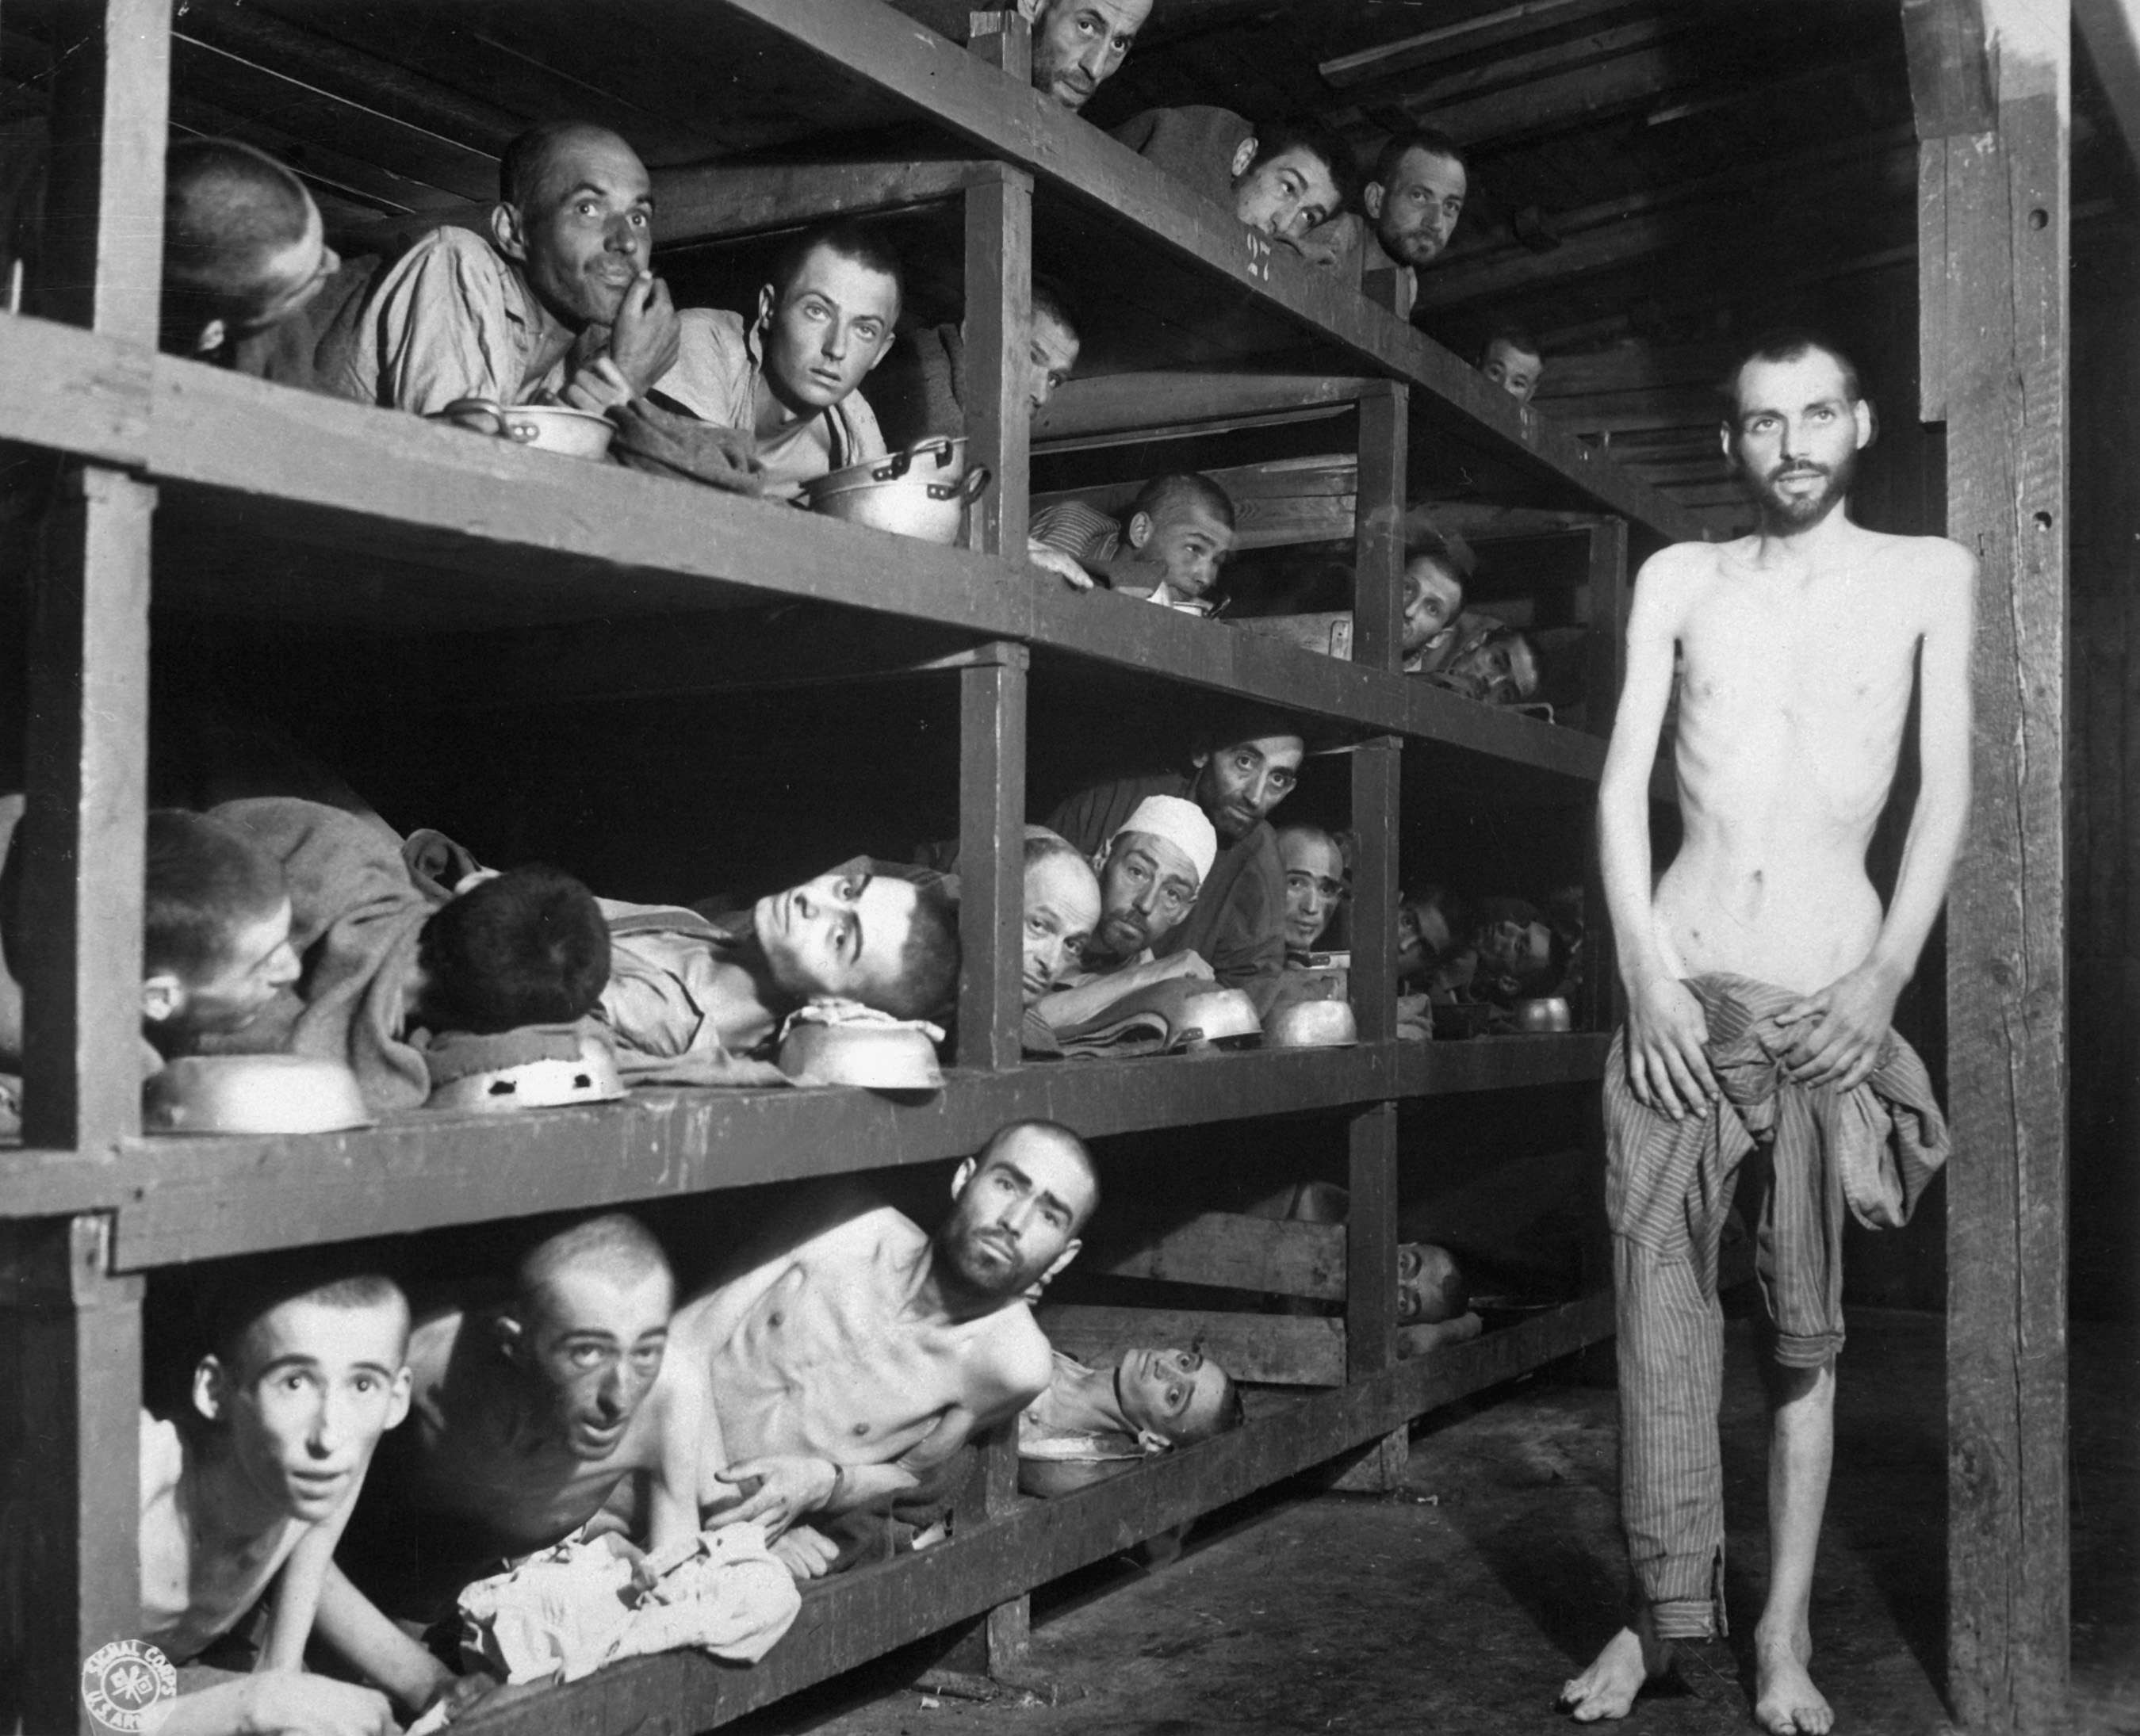 These are slave laborers in the Buchenwald concentration camp near Weimar; many had died from malnutrition when U.S. troops of the 80th Division entered the camp. The very ill man lying at the back on the lower bunk is Max Hamburger, who had TBC and severe malnutrition. He recovered and became a psychiatrist in the Netherlands. Second row, seventh from left is Elie Wiesel. Photograph taken 5 days after rescue.